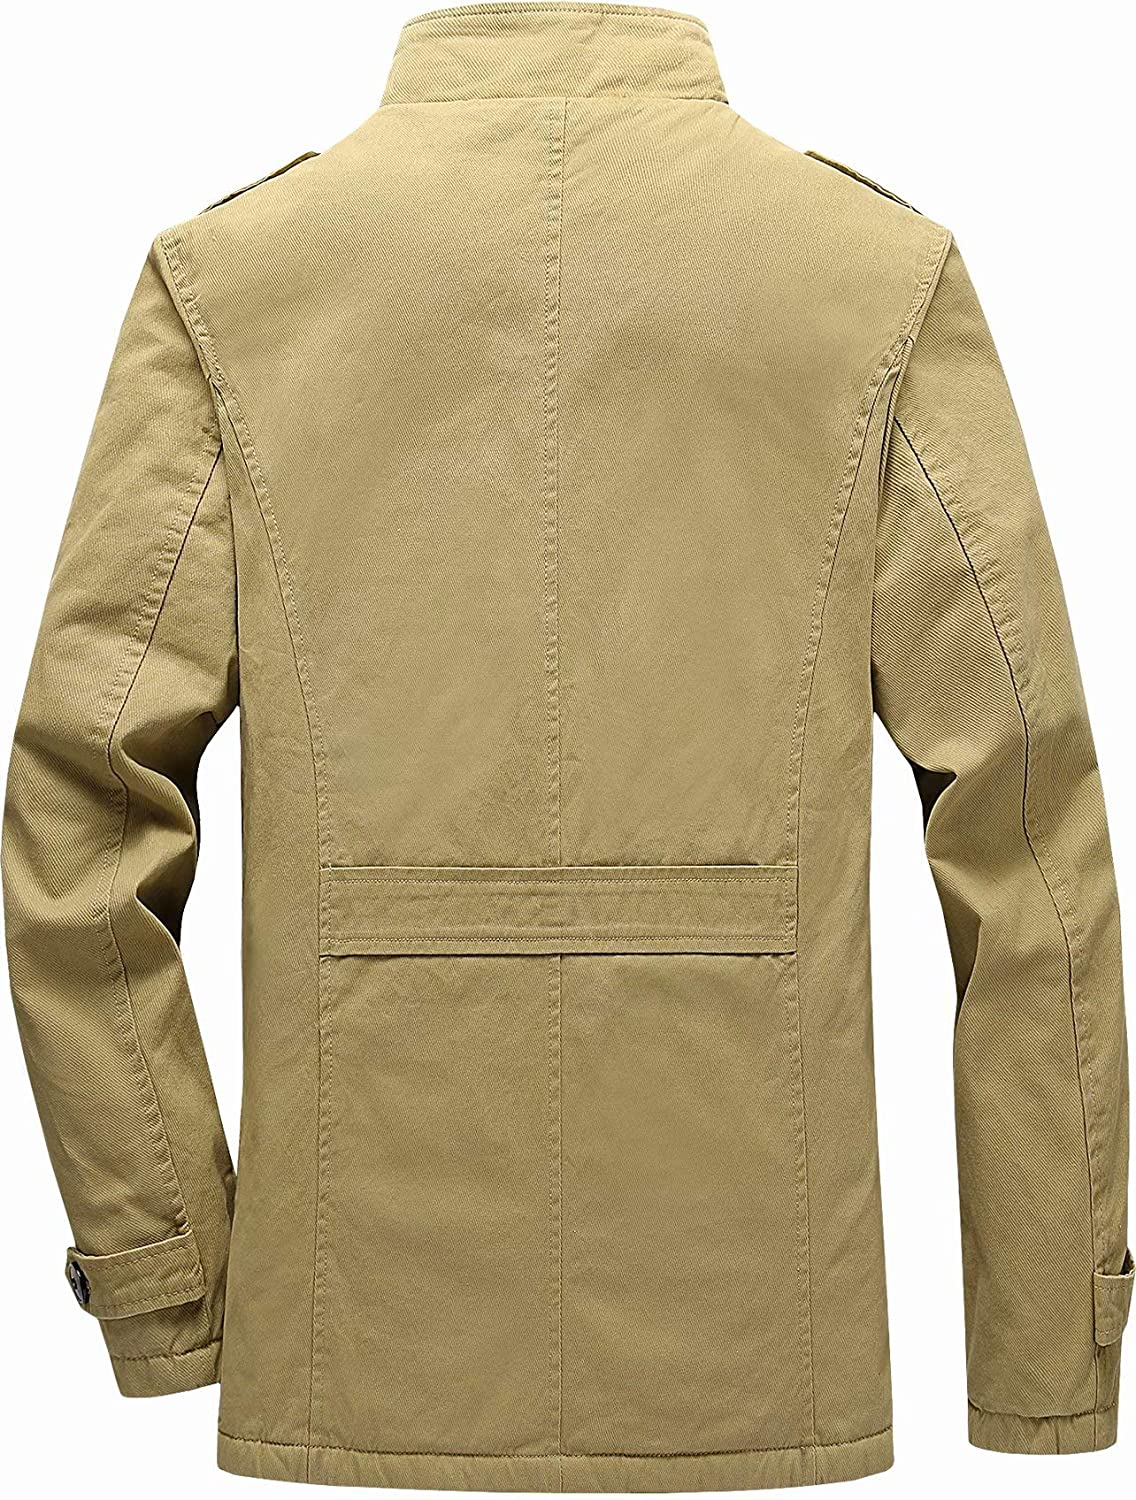 Vcansion Mens Winter Cotton Fleece Lined Jacket Coat Single Breasted Outerwear